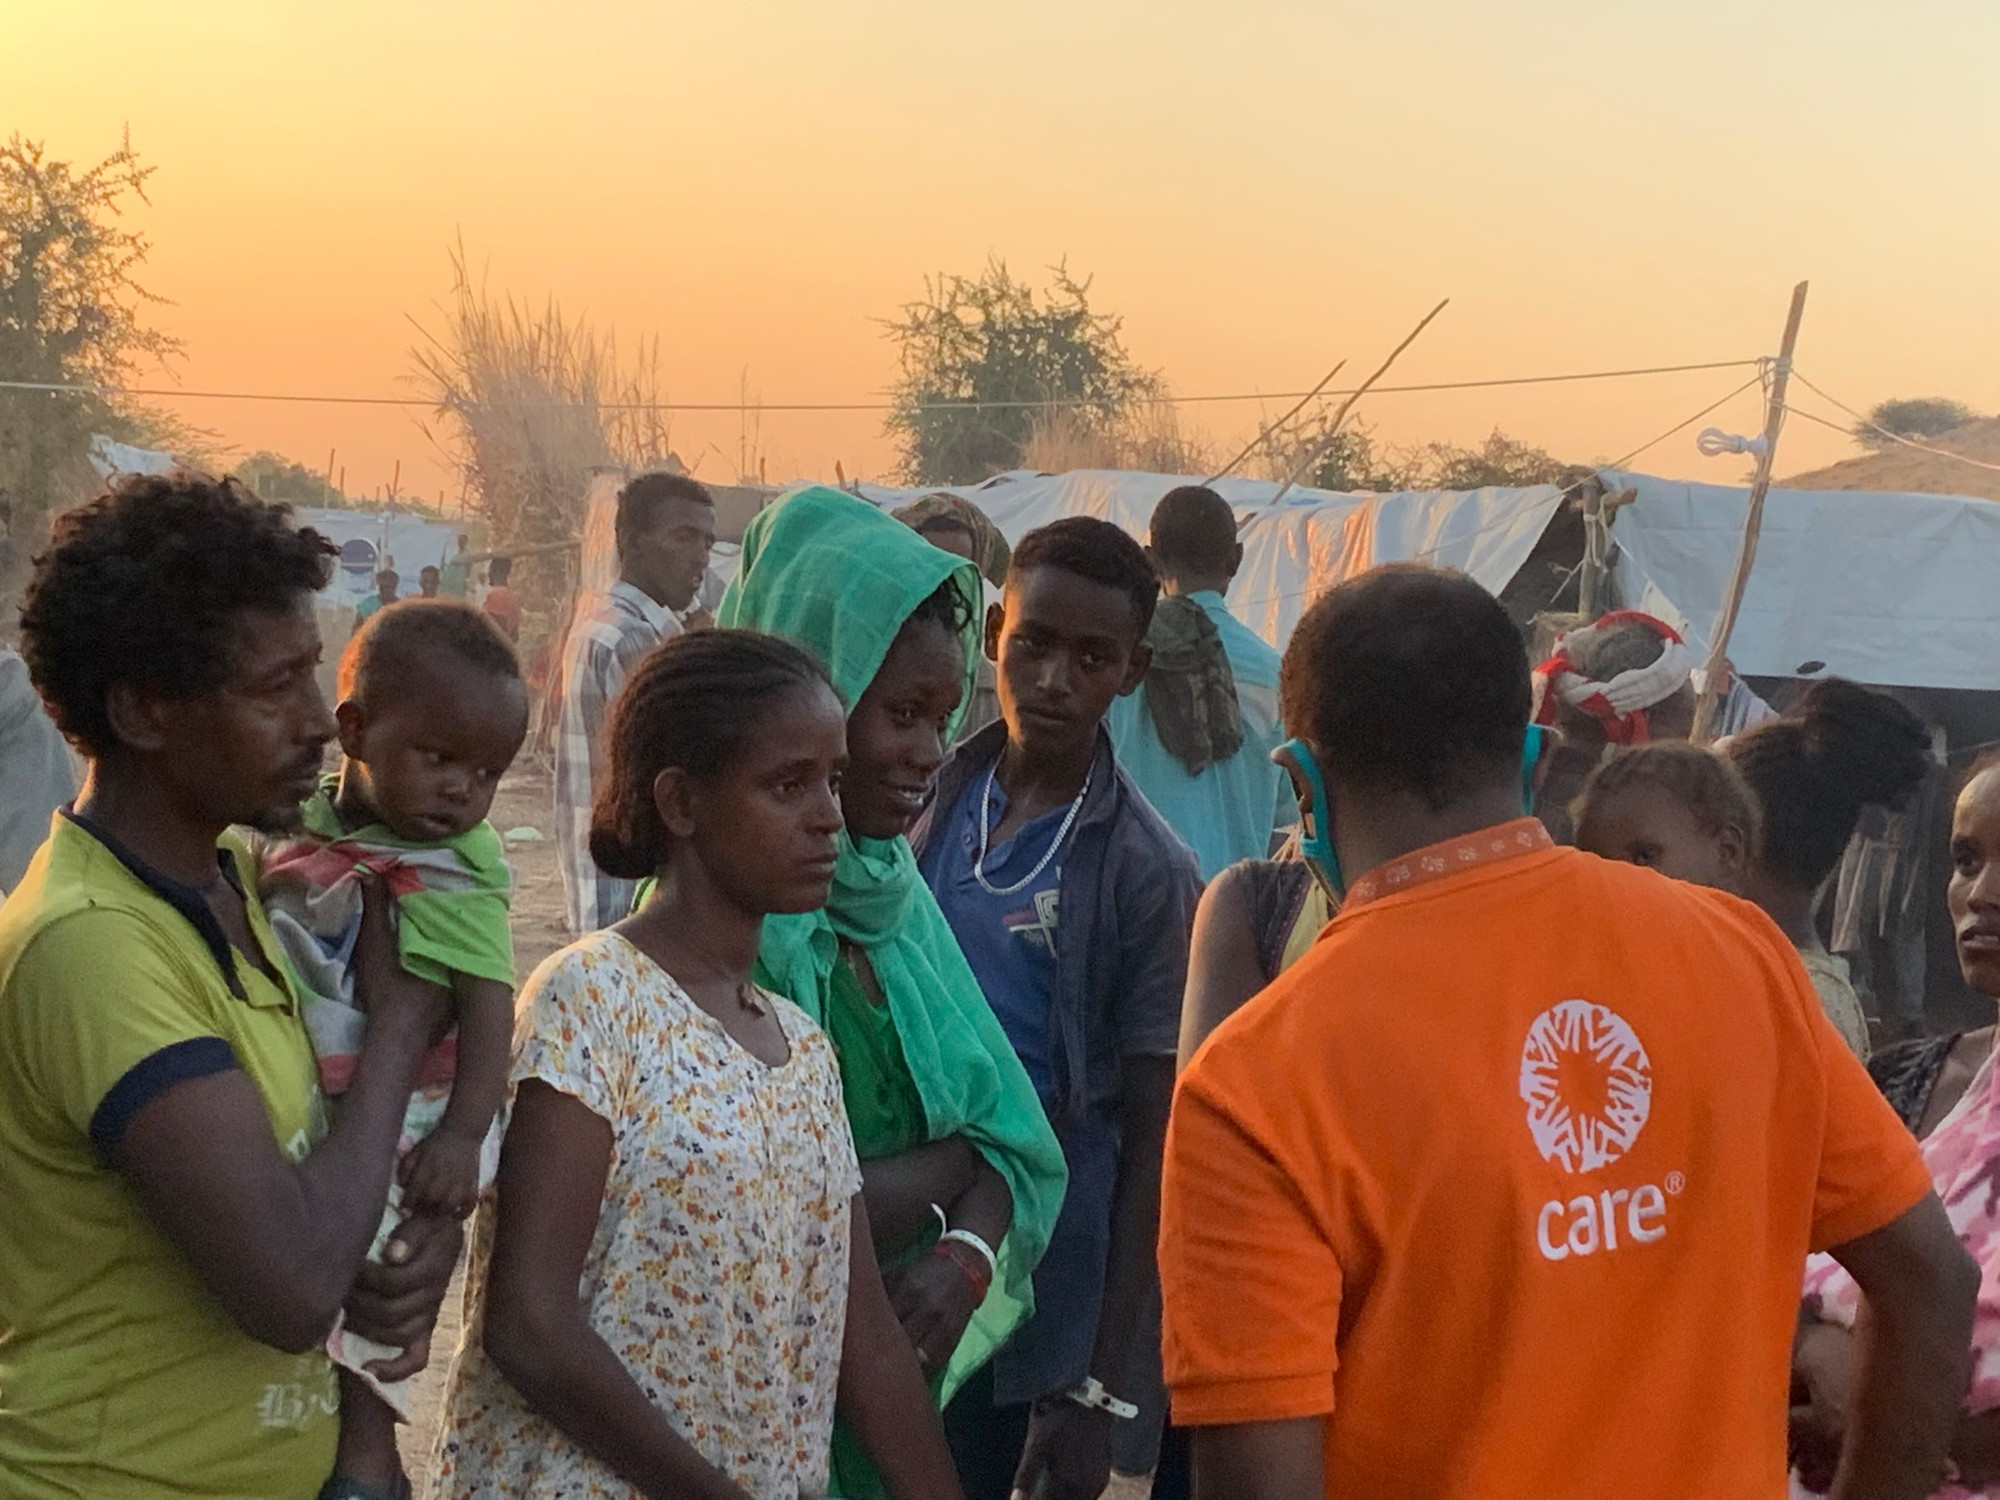 A group of people in a refugee camp speak to a CARE worker in front of tents.